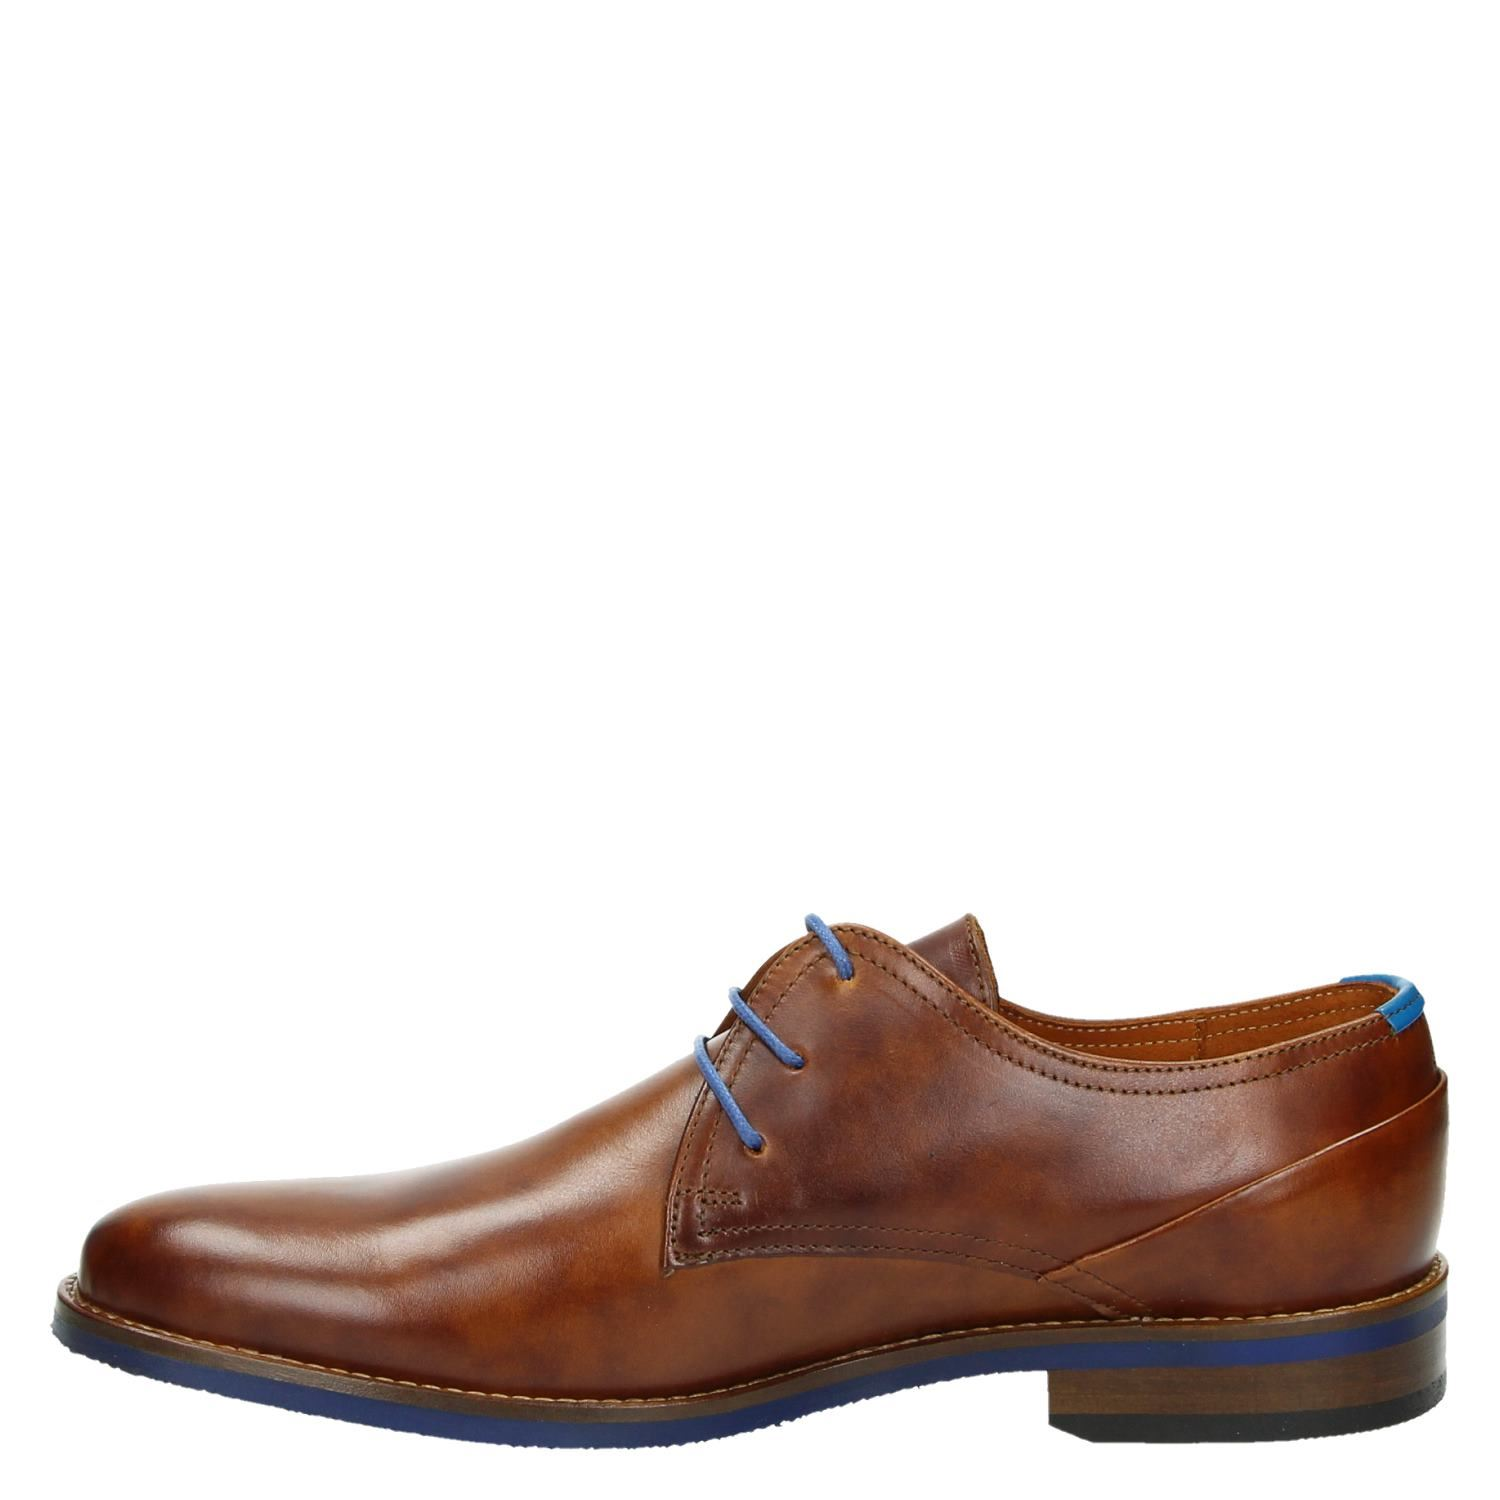 Treuil 5340 Chaussures Basses Robe Cognac dMTjZa